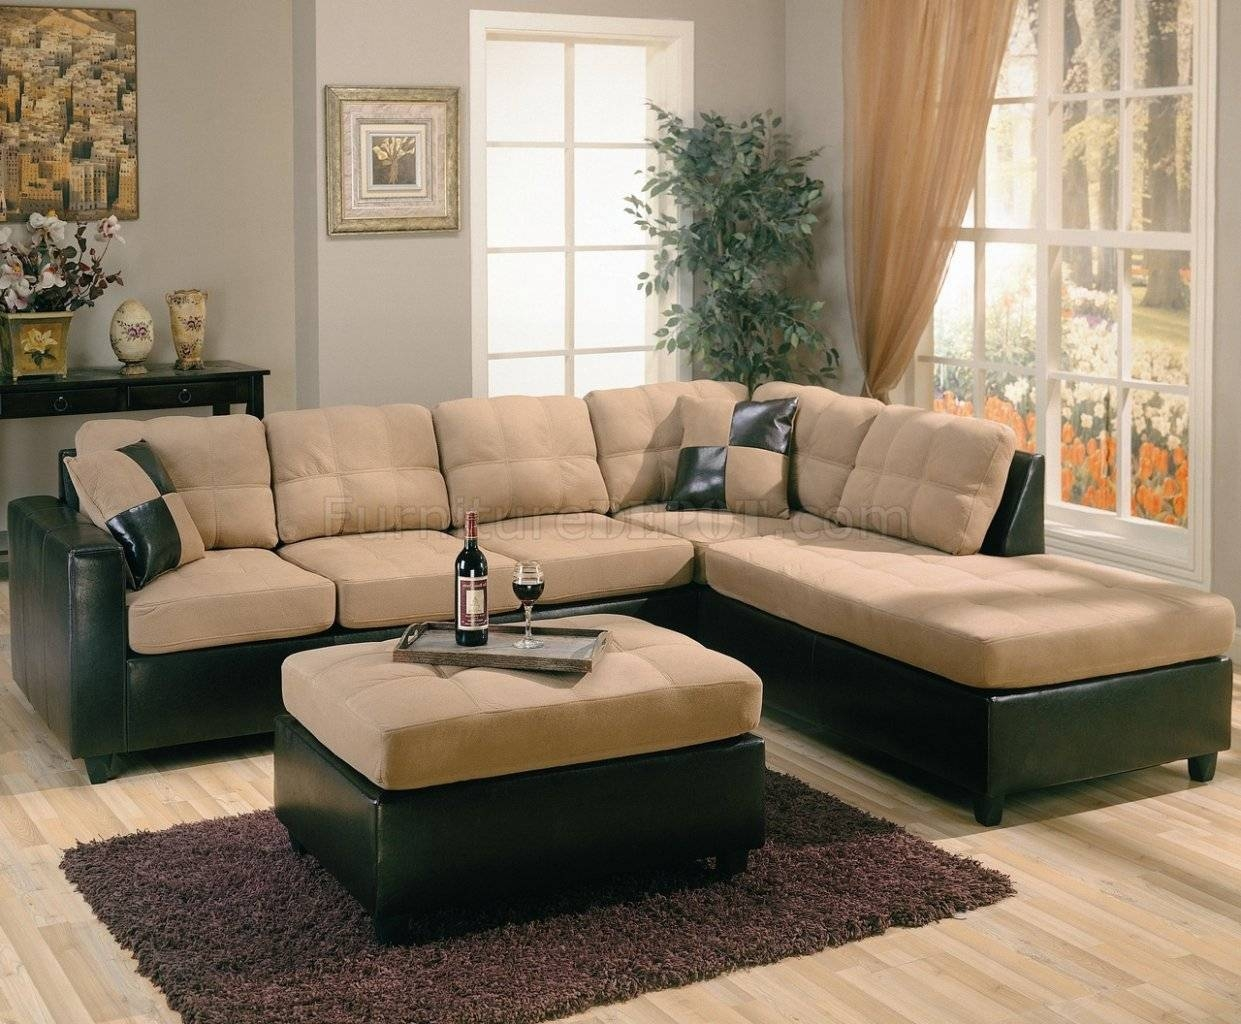 Two-Tone Tan Microfiber & Dark Brown Faux Leather Sectional Sofa in Chocolate Brown Microfiber Sectional Sofas (Image 14 of 15)